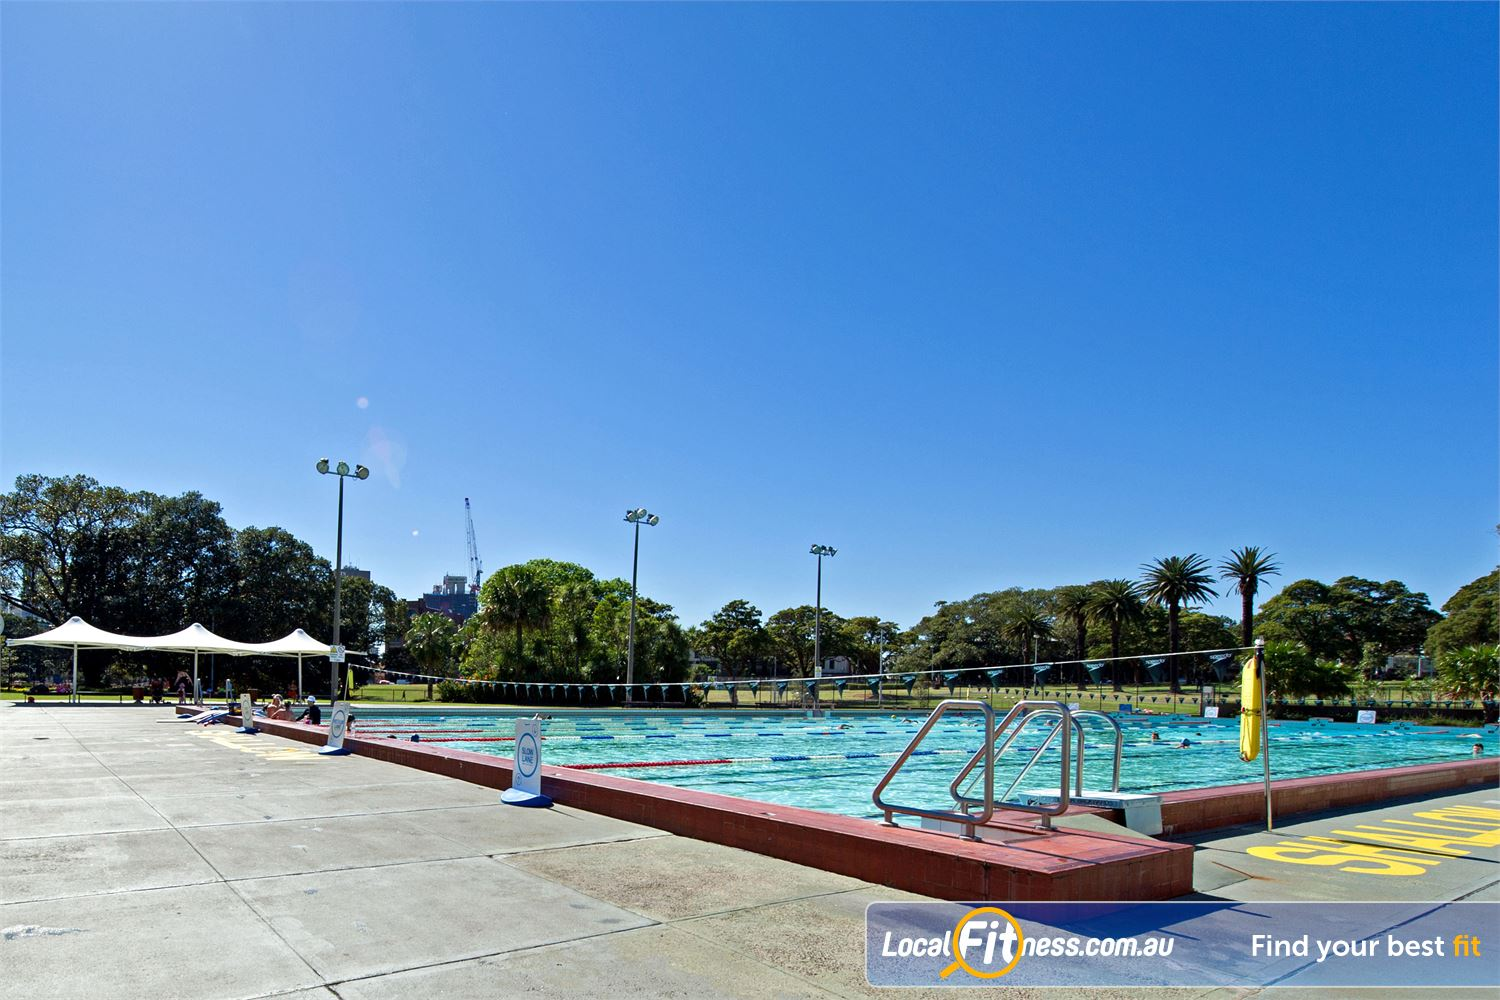 Victoria Park Pool Near Summer Hill Camperdown Learn to Swim program are great for the kids.